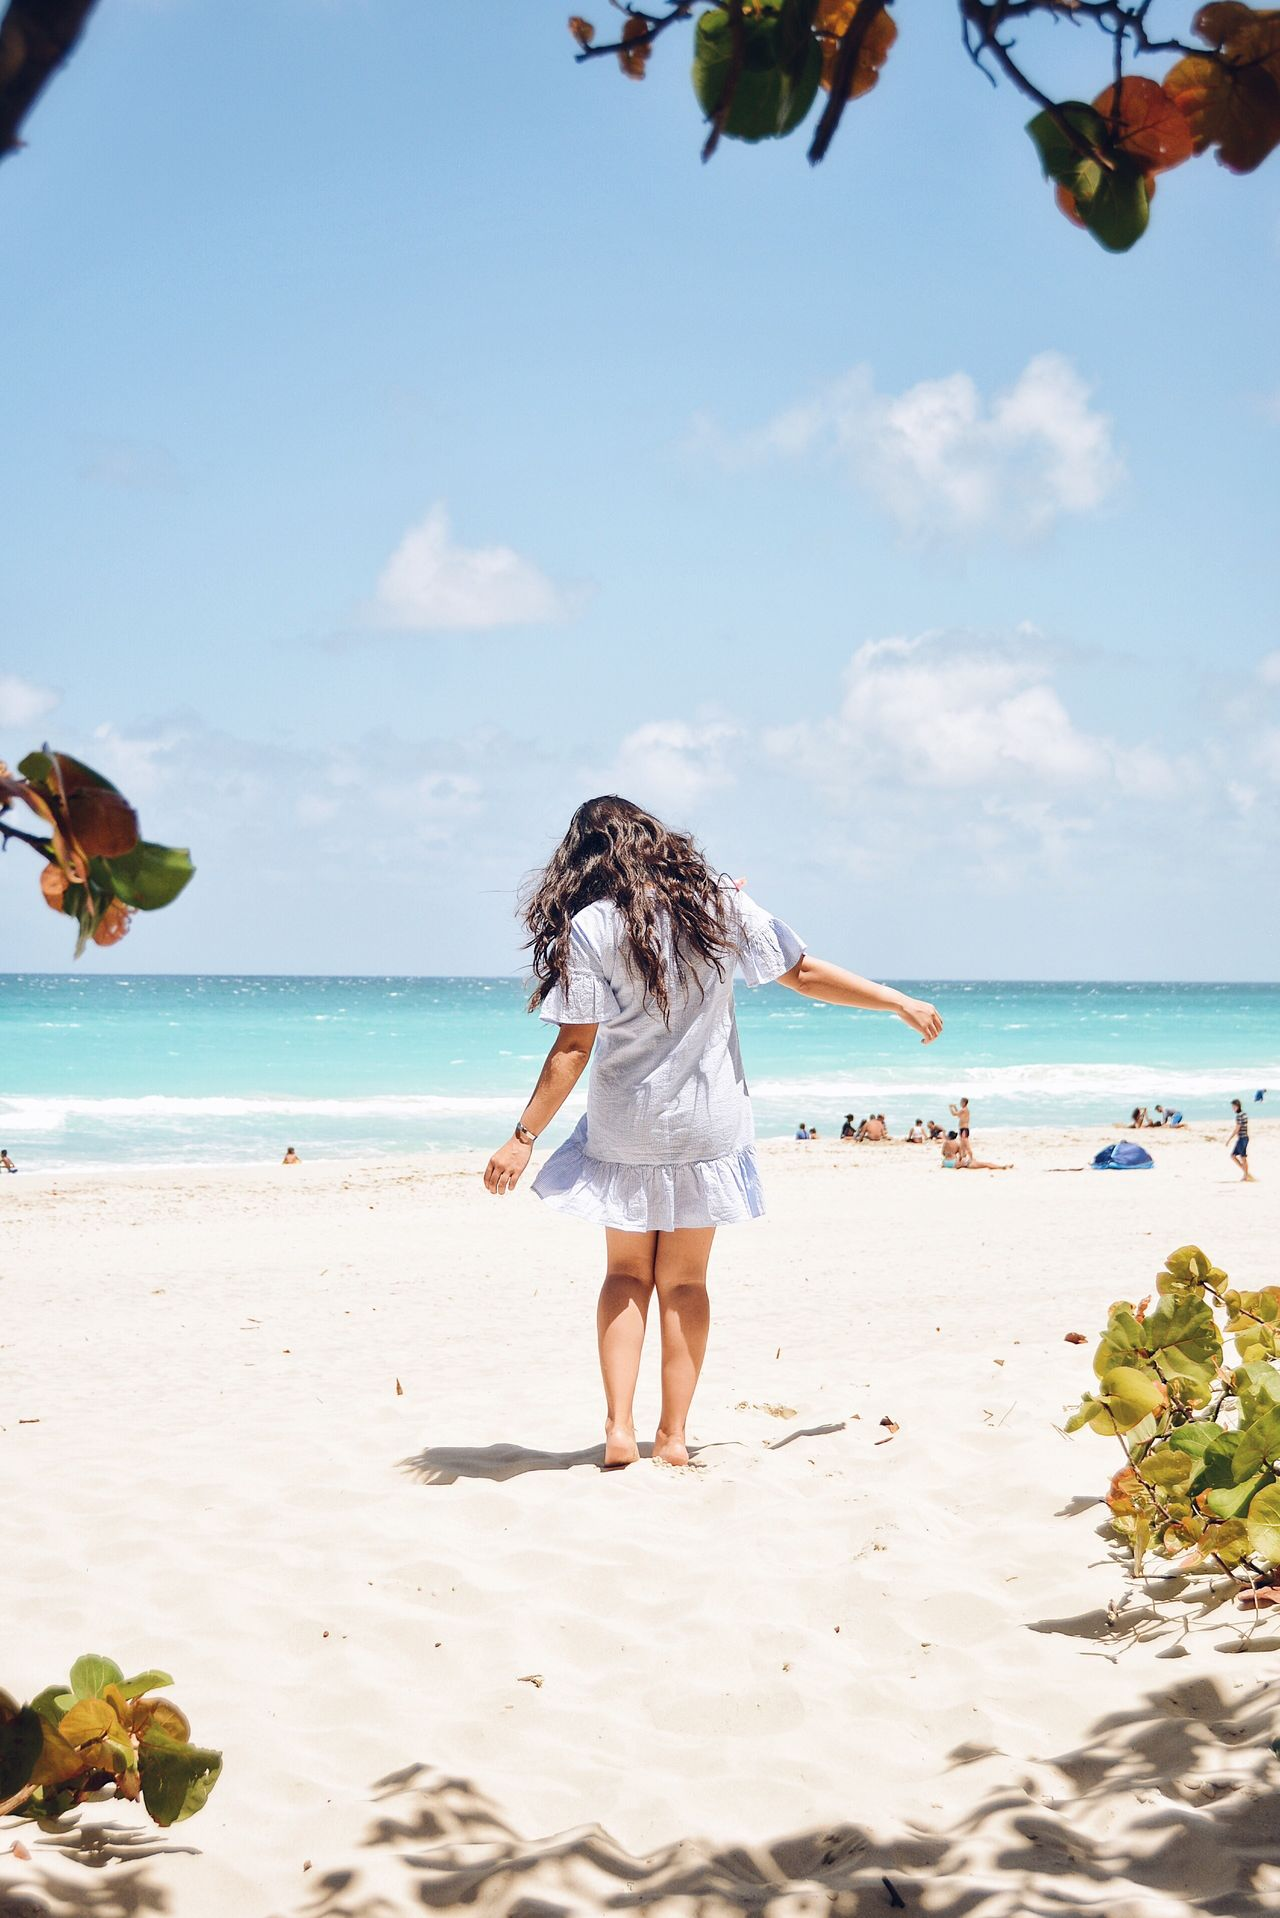 Free your heart! Sea Beach Horizon Over Water Real People Scenics Barefoot Vacations Standing Lifestyles Warm Weather Beach Life Life By The Sea Dancing Free Ocean View The Great Outdoors - 2017 EyeEm Awards Cuba Varadero